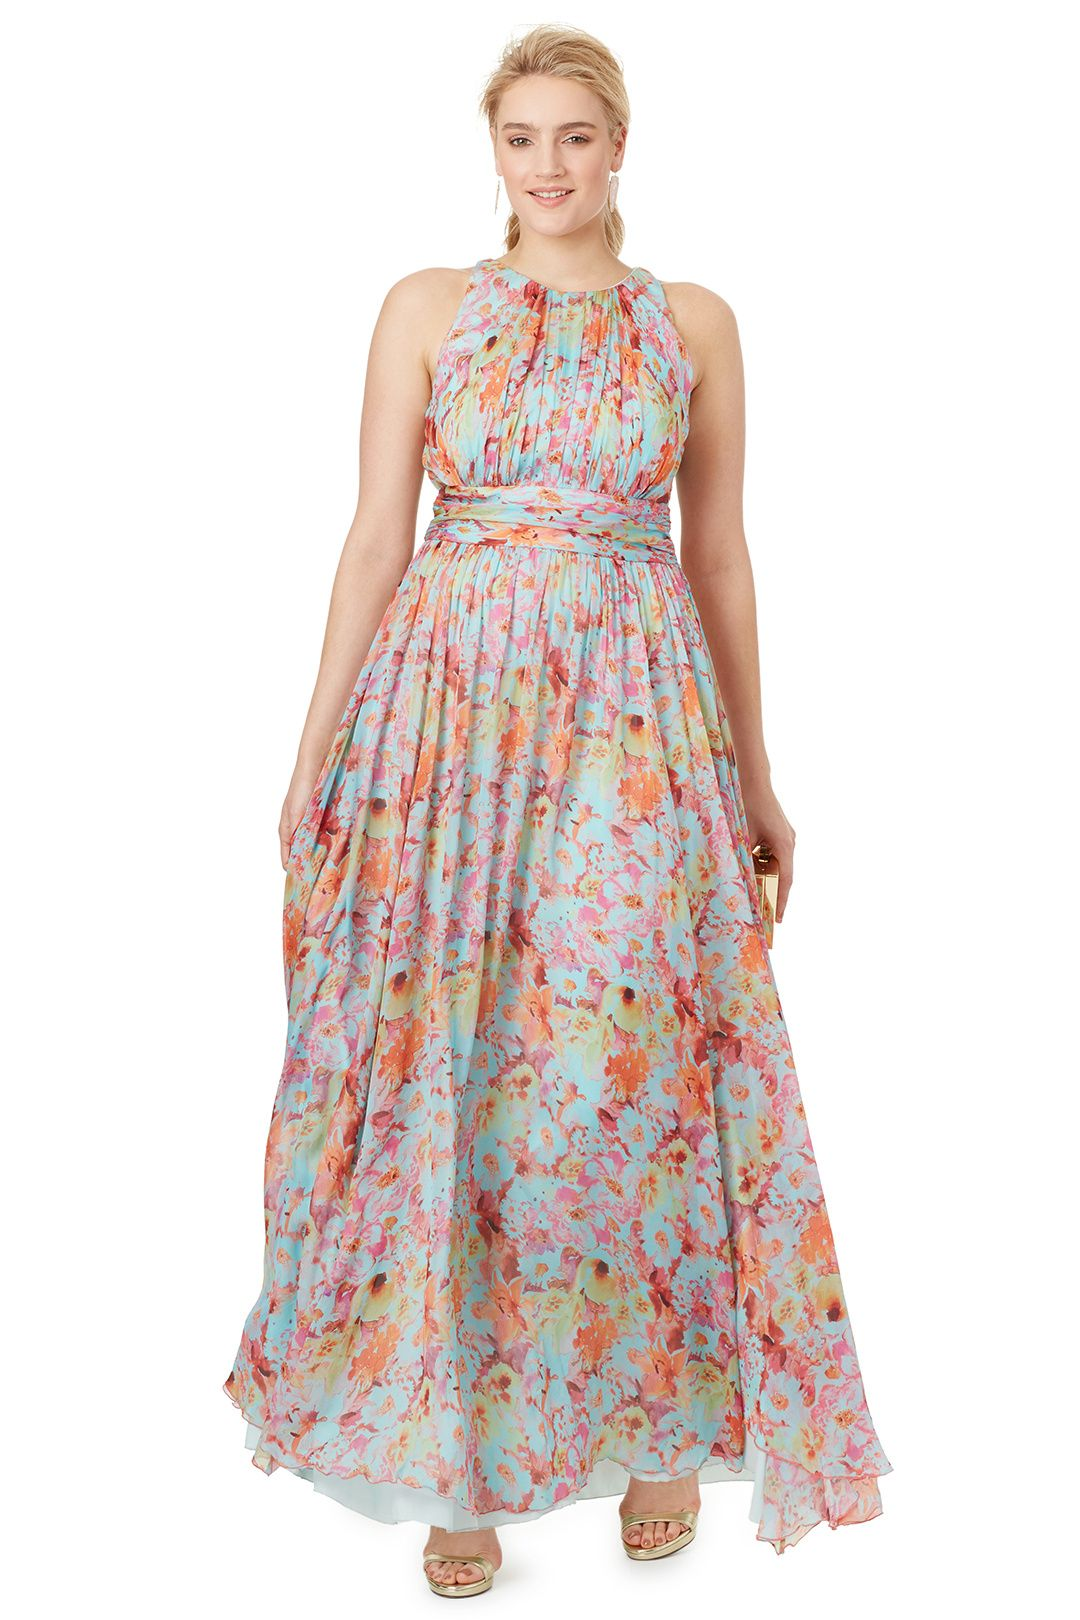 Guest at a wedding dress  Mother of the Bride Dresses for a Beach Wedding  Maxi dresses